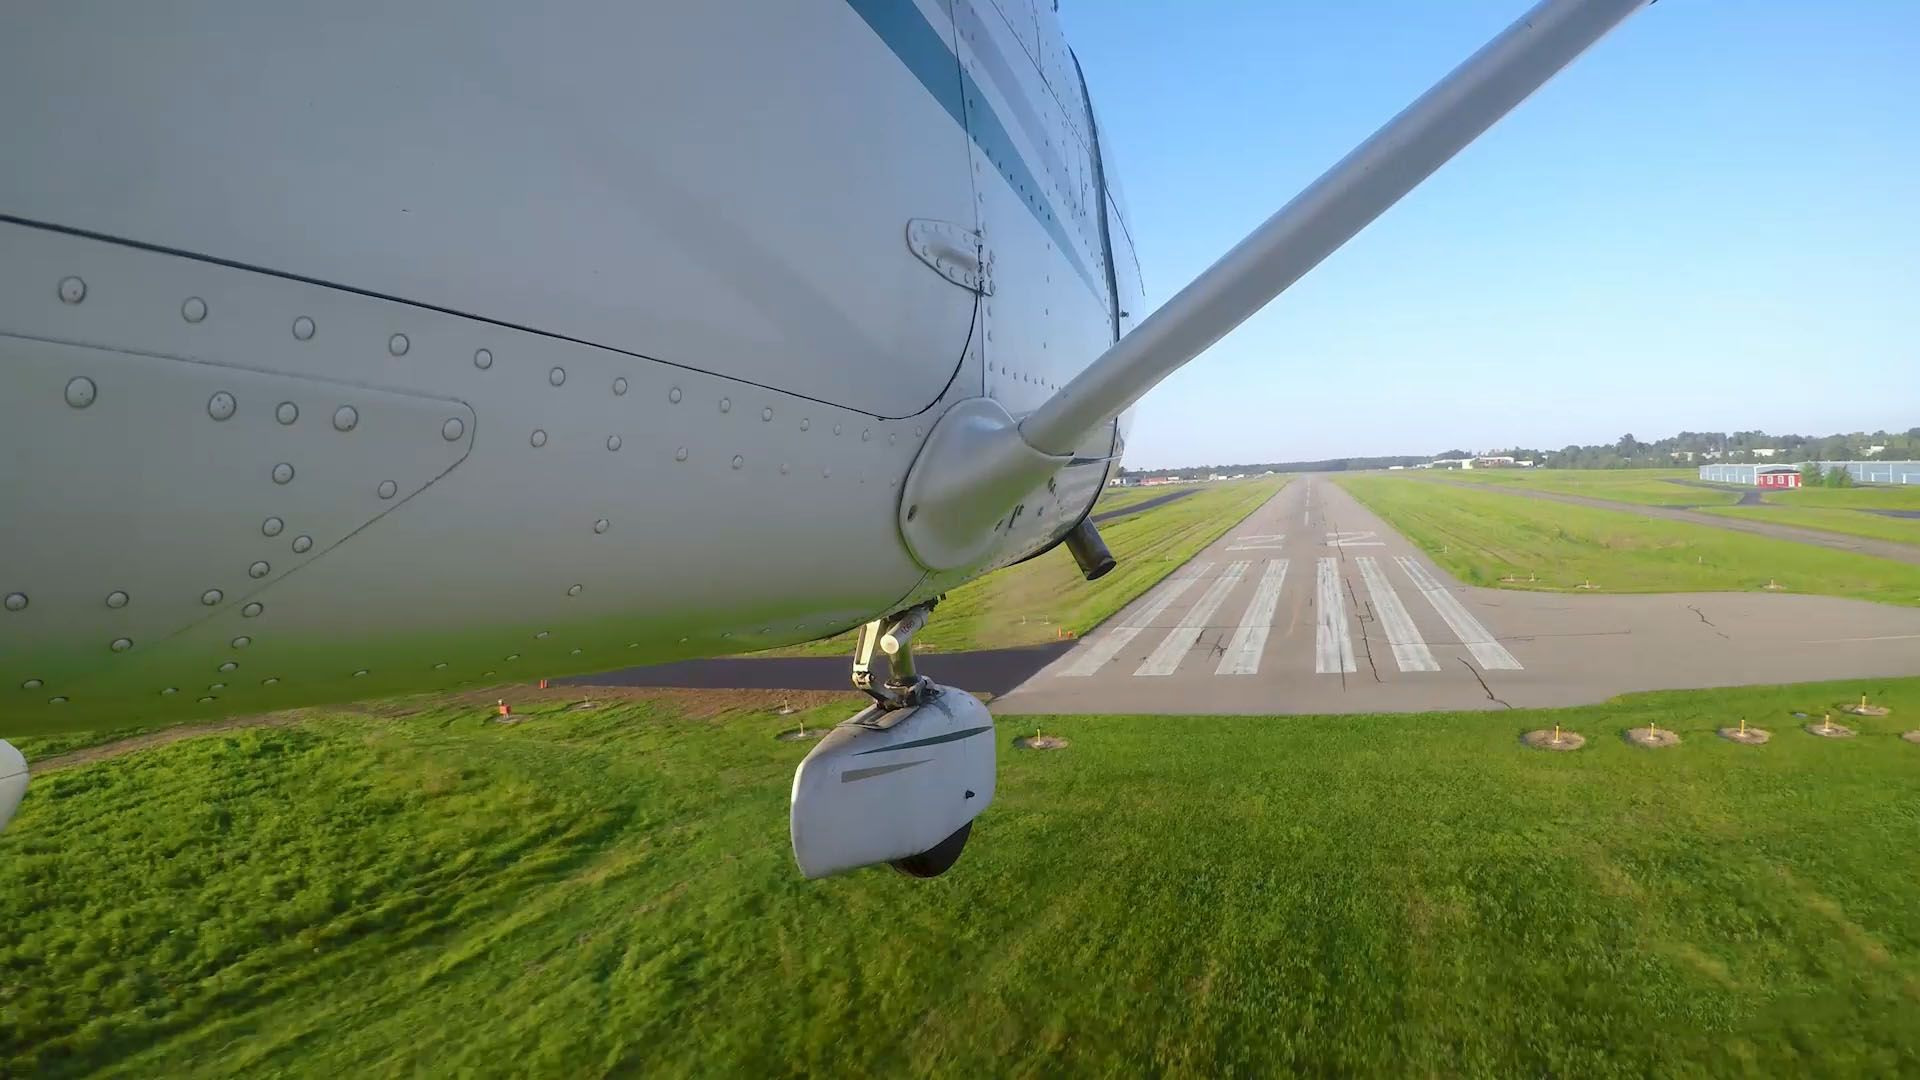 Landing an airplane is one of the most challenging, yet